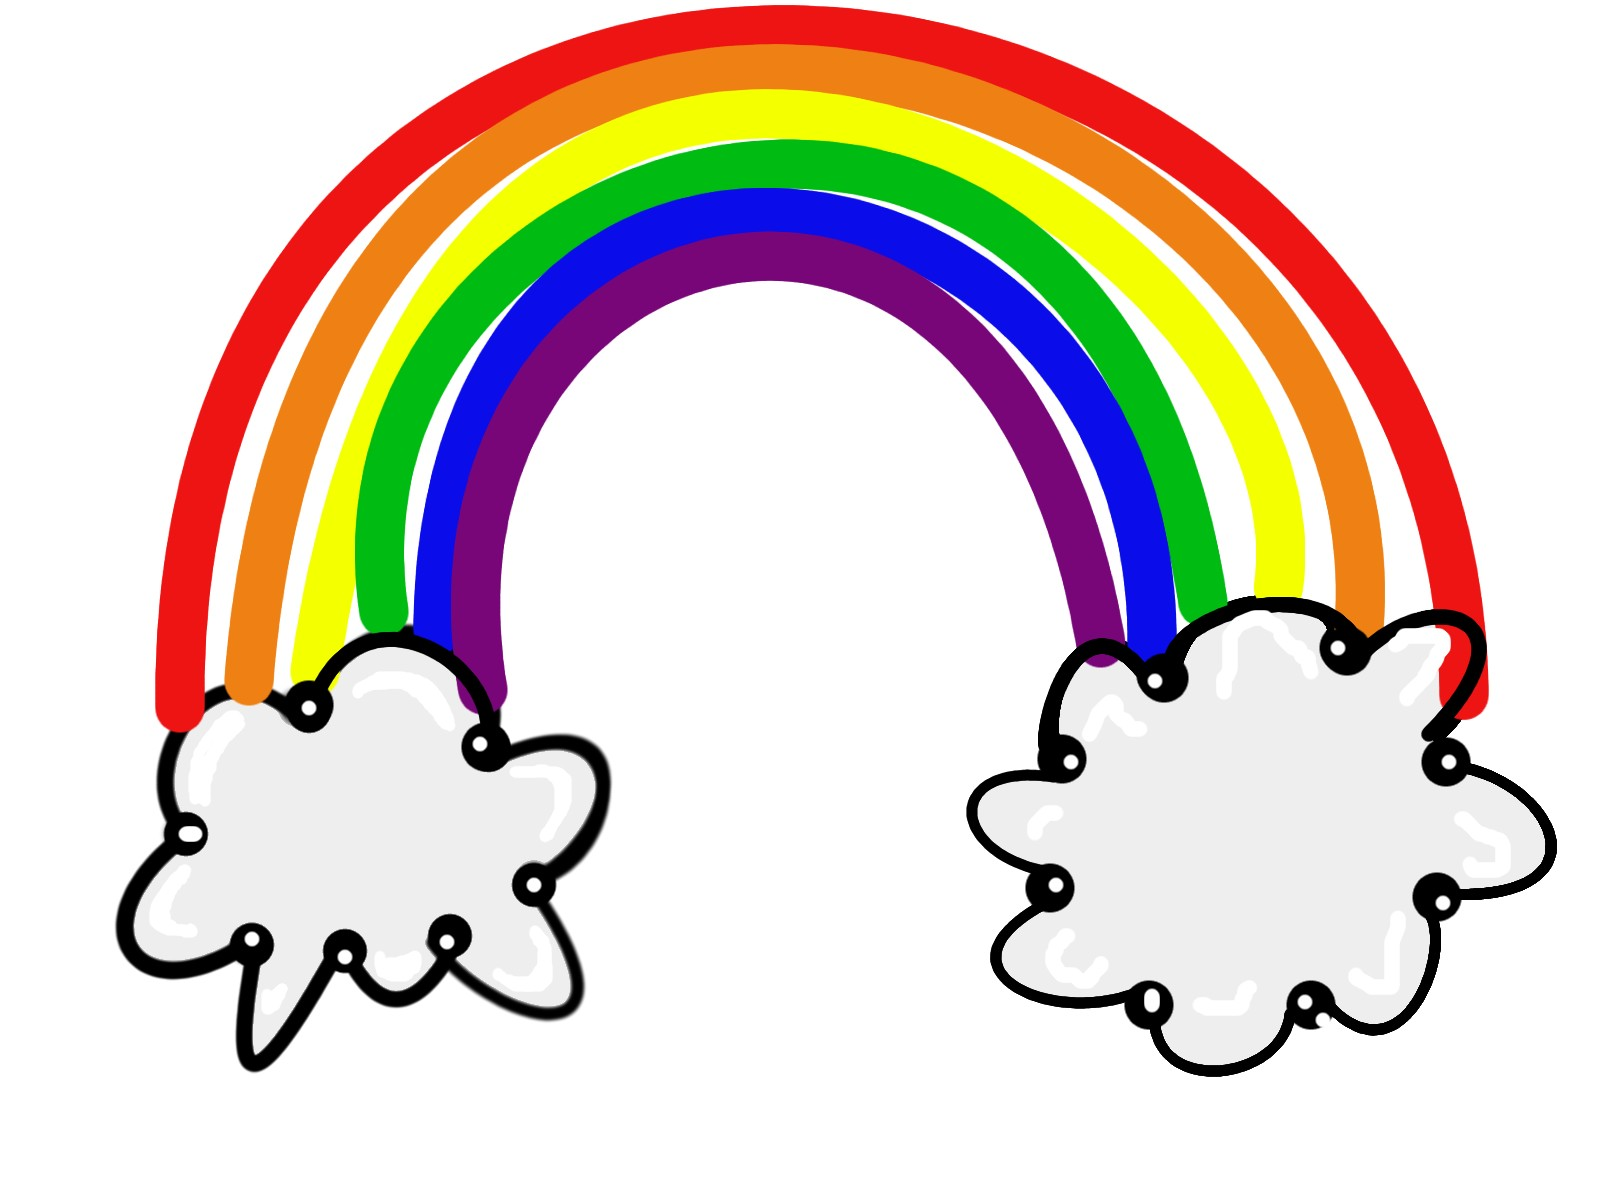 1600x1200 Black And White Rainbow Outline Free Clipart Images Clipartix